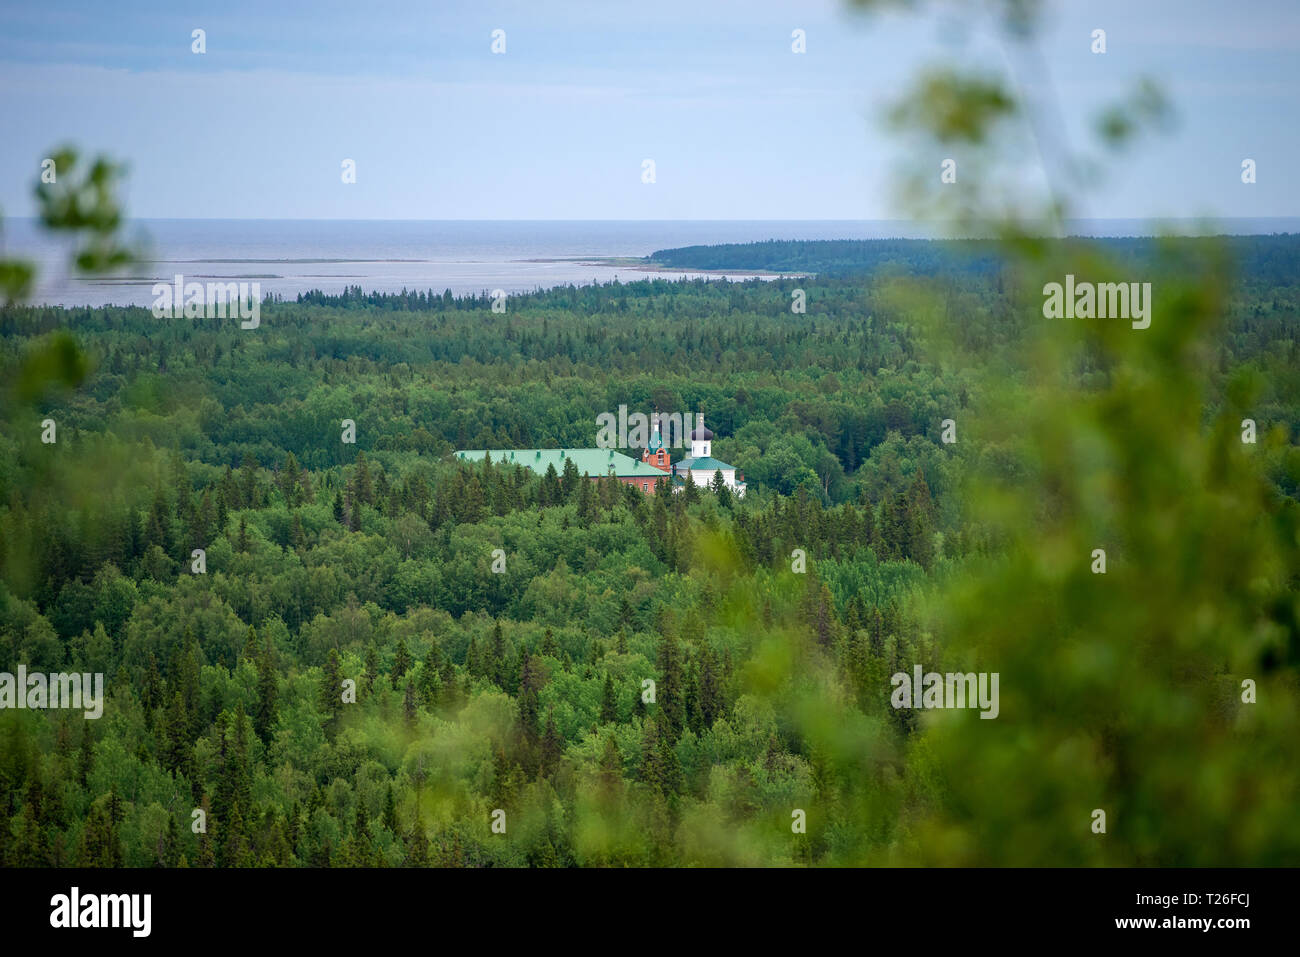 SOLOVKI, REPUBLIC OF KARELIA, RUSSIA - JUNE 27, 2018: View of the Holy Ascension monastery of the Solovki monastery, Savvatyevo from the top of the Se Stock Photo